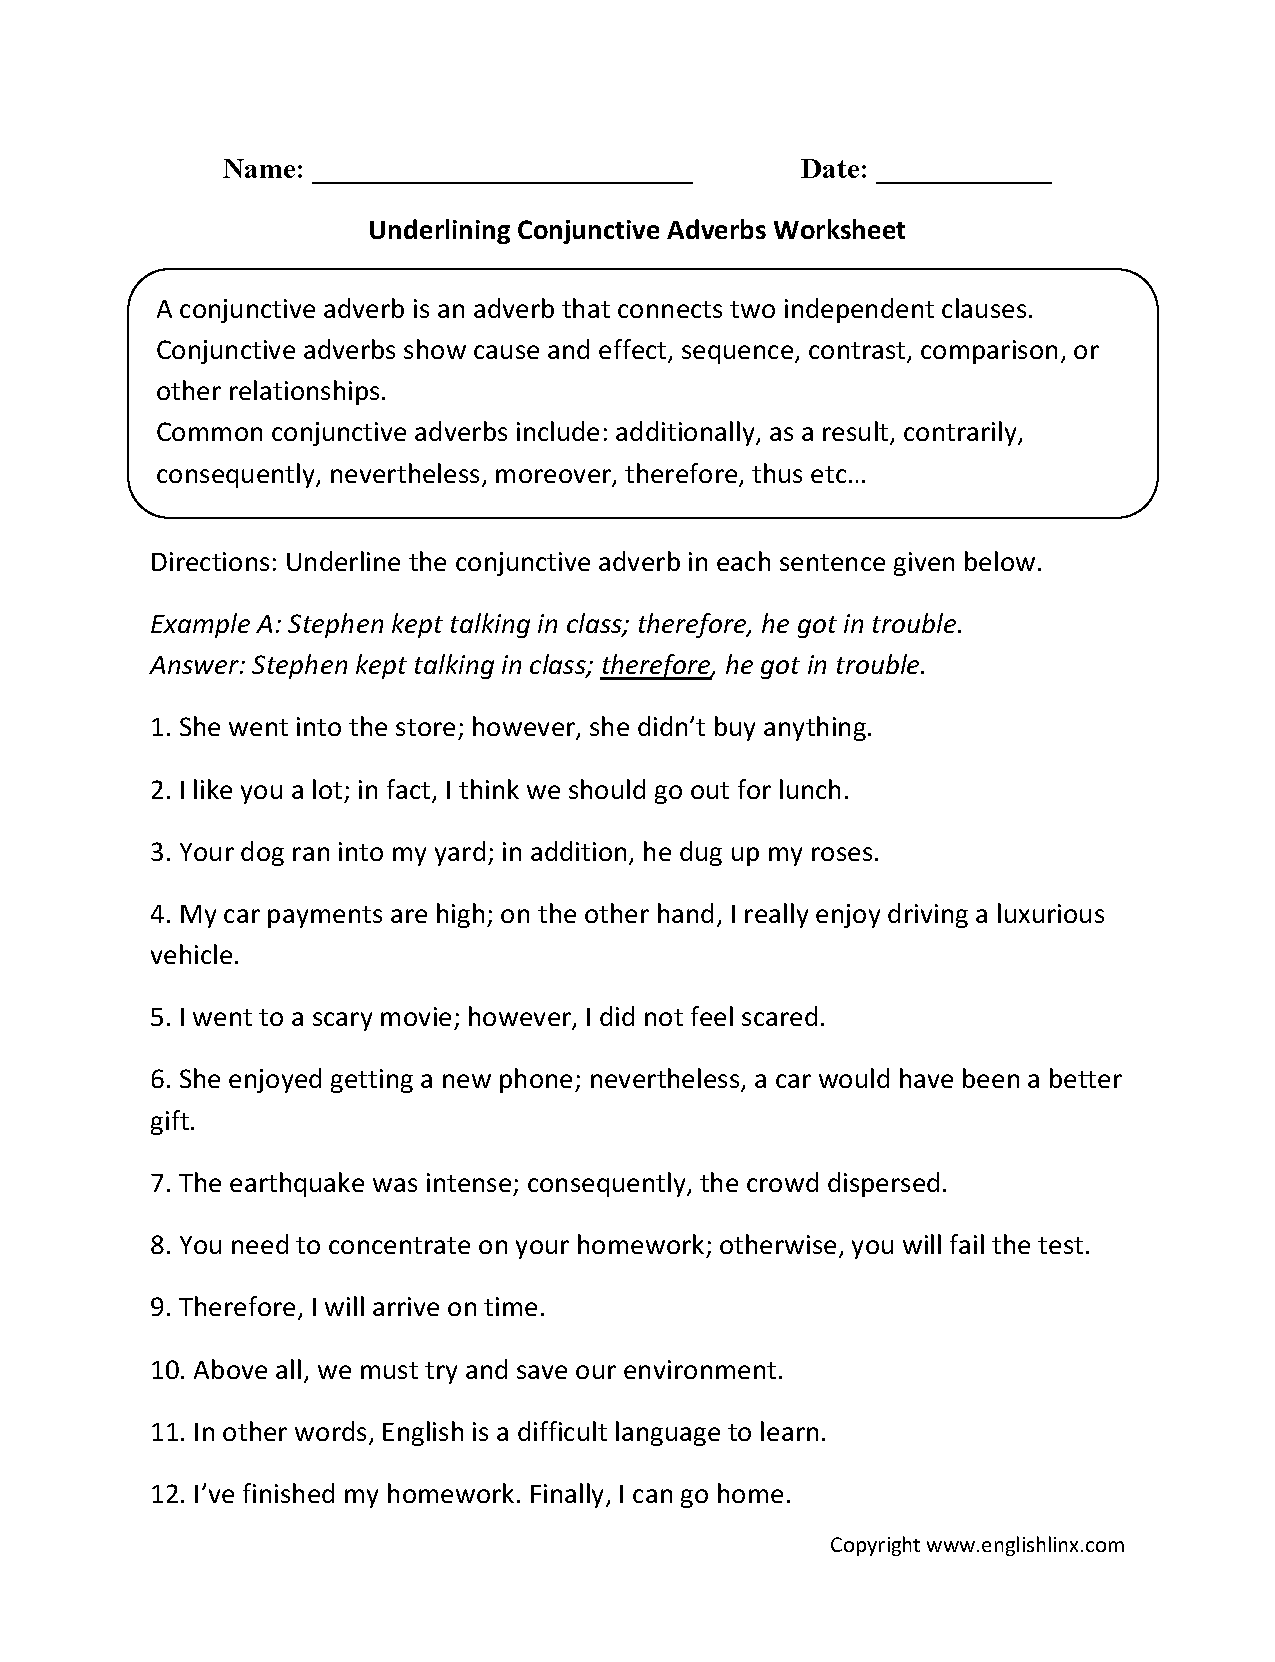 Weirdmailus  Gorgeous Englishlinxcom  Conjunctions Worksheets With Licious Worksheet With Beauteous Literature Circle Worksheets Also Pedigree Charts Worksheet In Addition Personal Boundaries Worksheet And Listening Skills Worksheets As Well As Order Of Operations Practice Worksheet Additionally Metrics And Measurement Worksheet Answers From Englishlinxcom With Weirdmailus  Licious Englishlinxcom  Conjunctions Worksheets With Beauteous Worksheet And Gorgeous Literature Circle Worksheets Also Pedigree Charts Worksheet In Addition Personal Boundaries Worksheet From Englishlinxcom